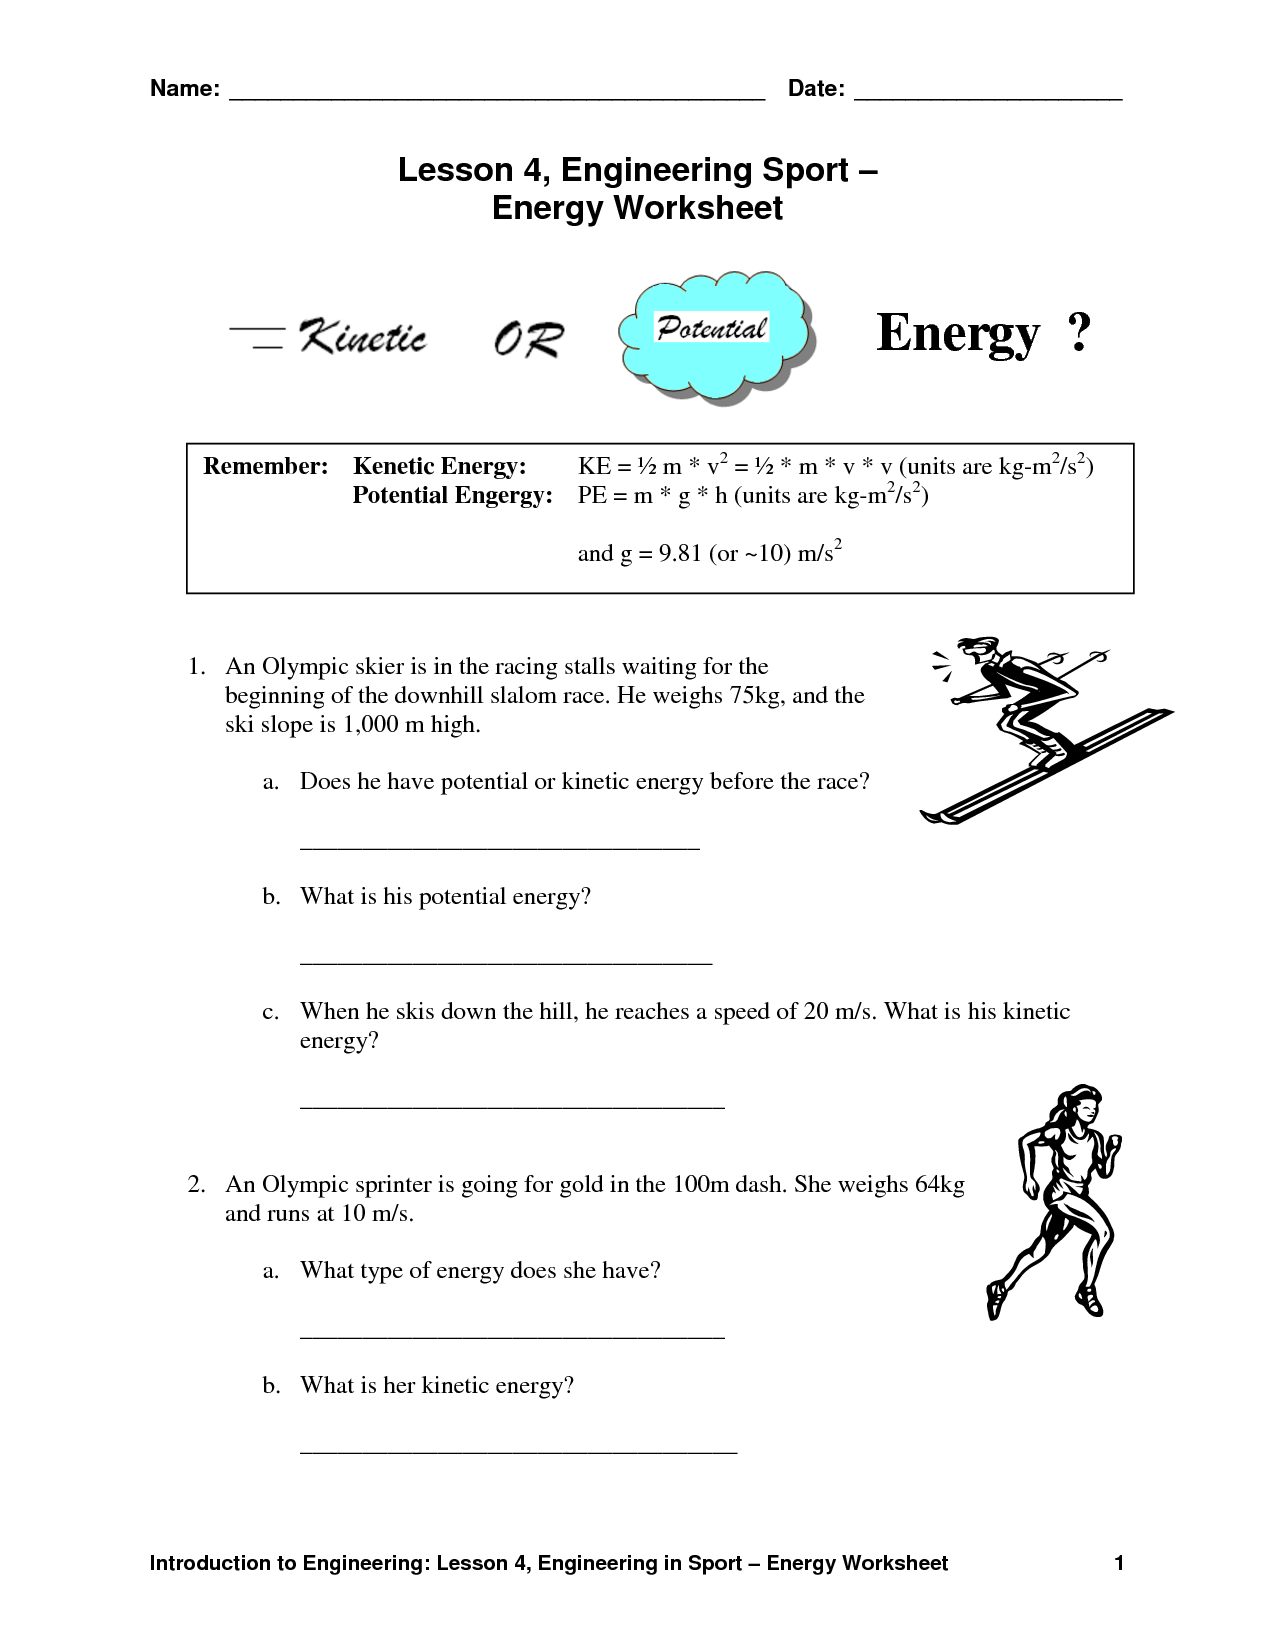 35 Potential And Kinetic Energy Worksheet